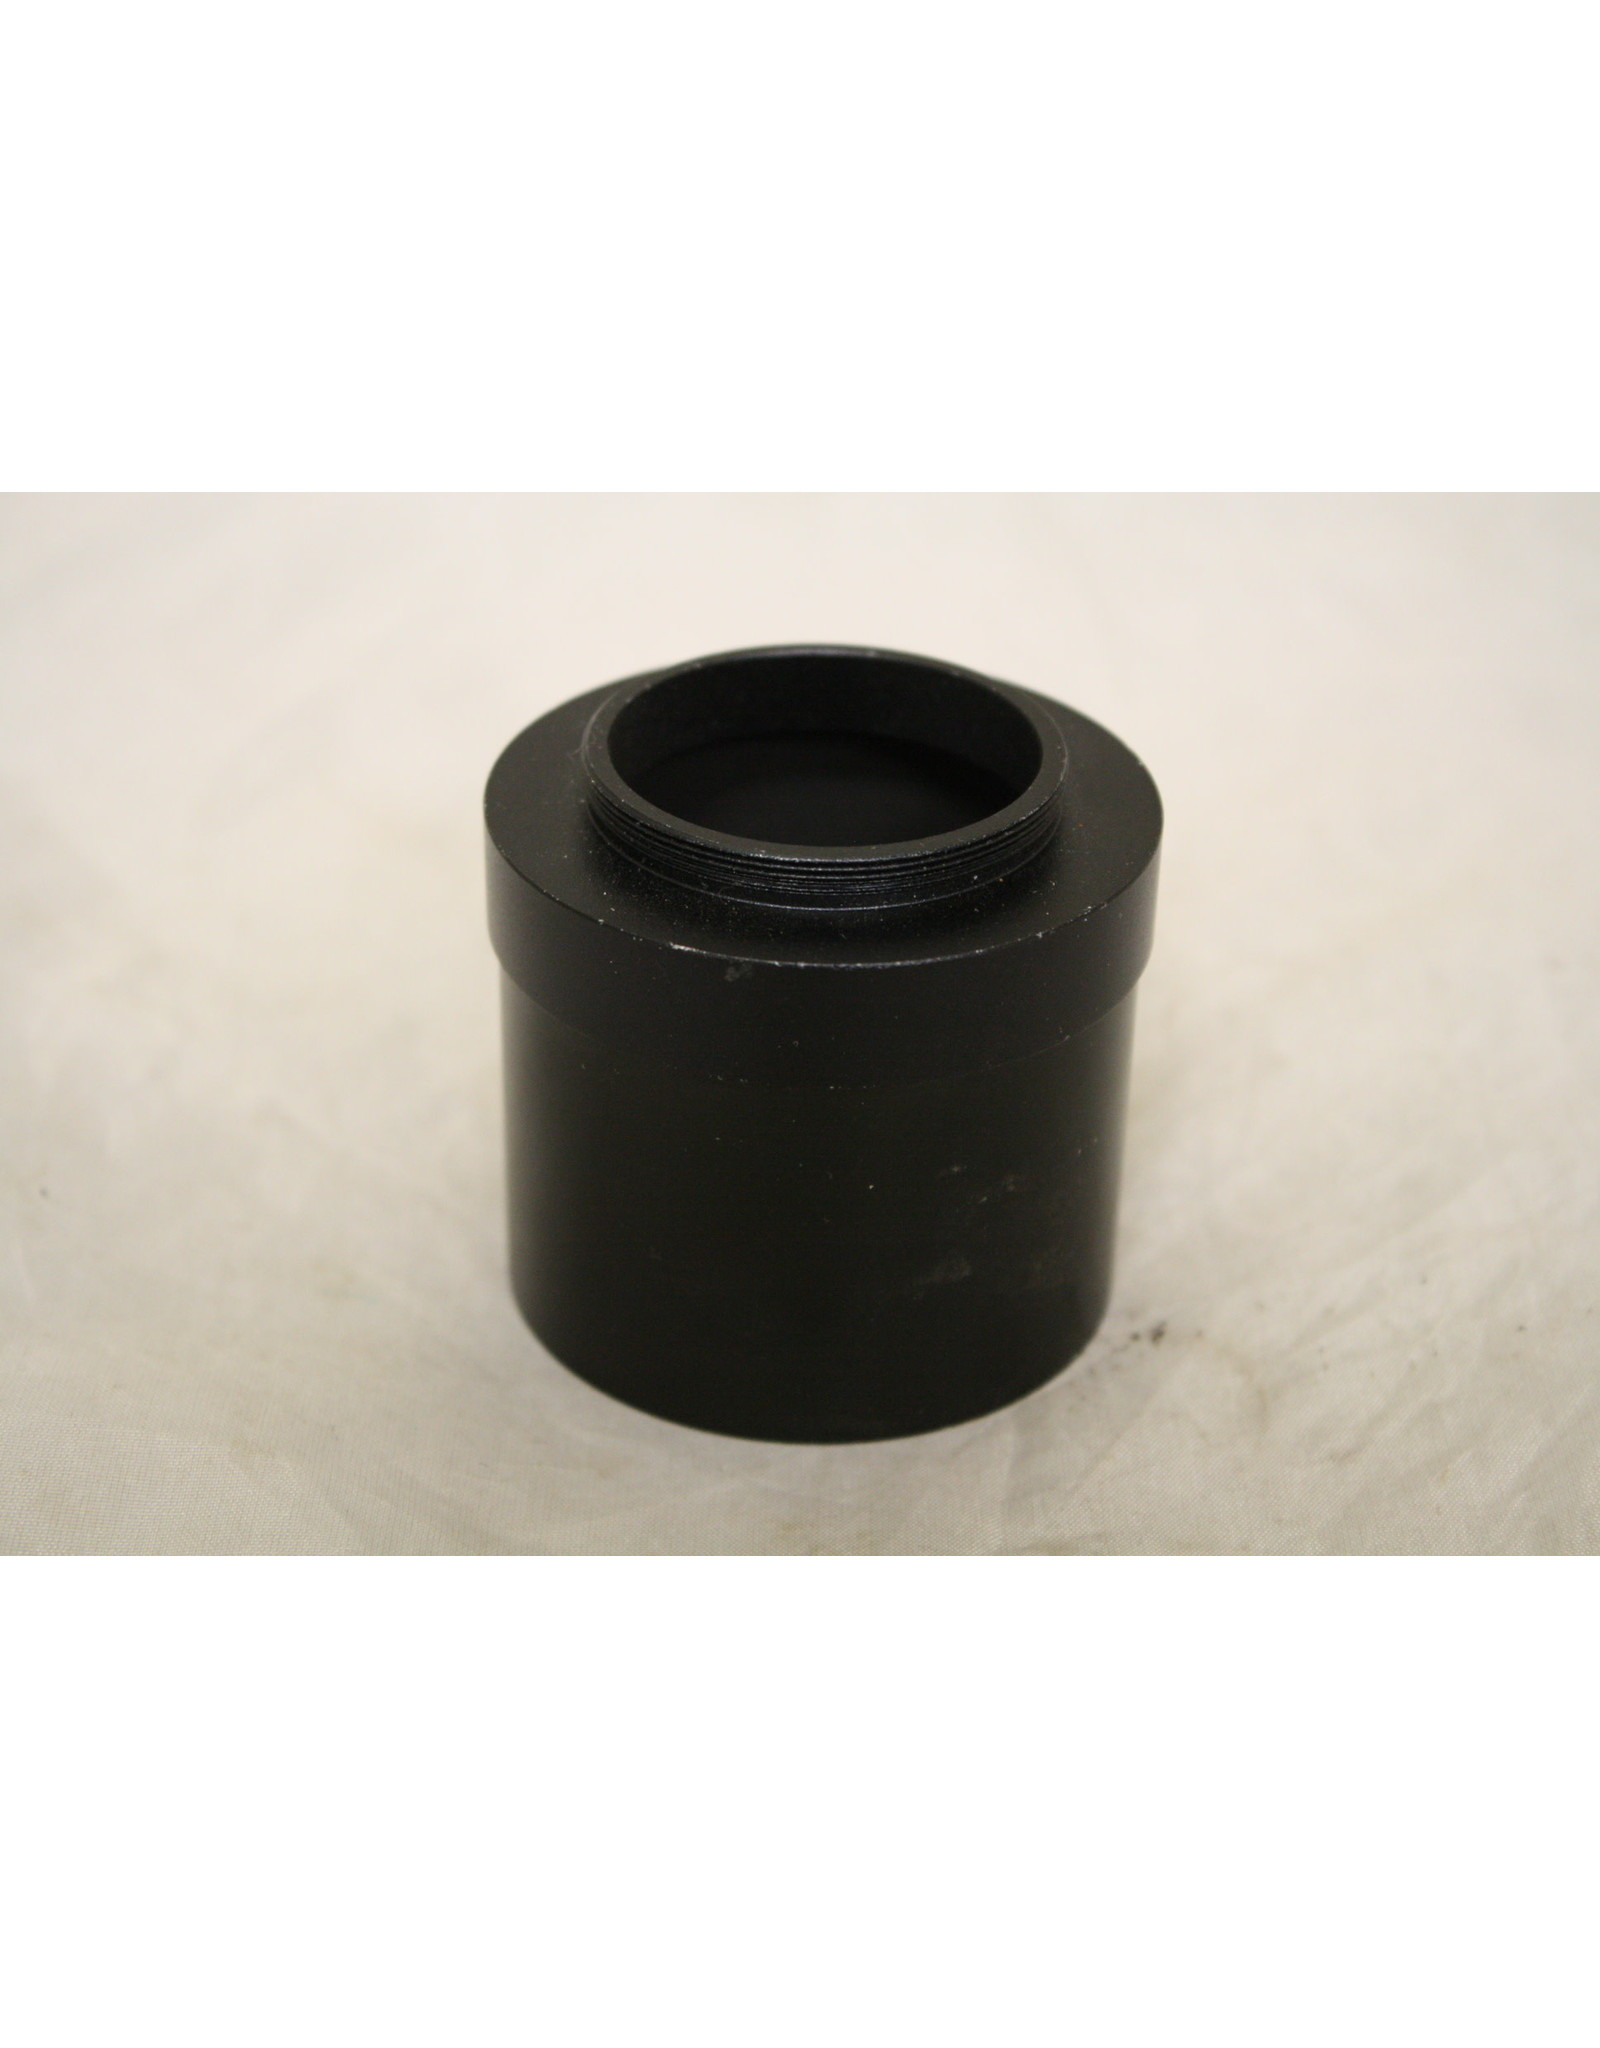 Camera Adapter 2 Inch with 1/2 inch Rise (Pre-owned)